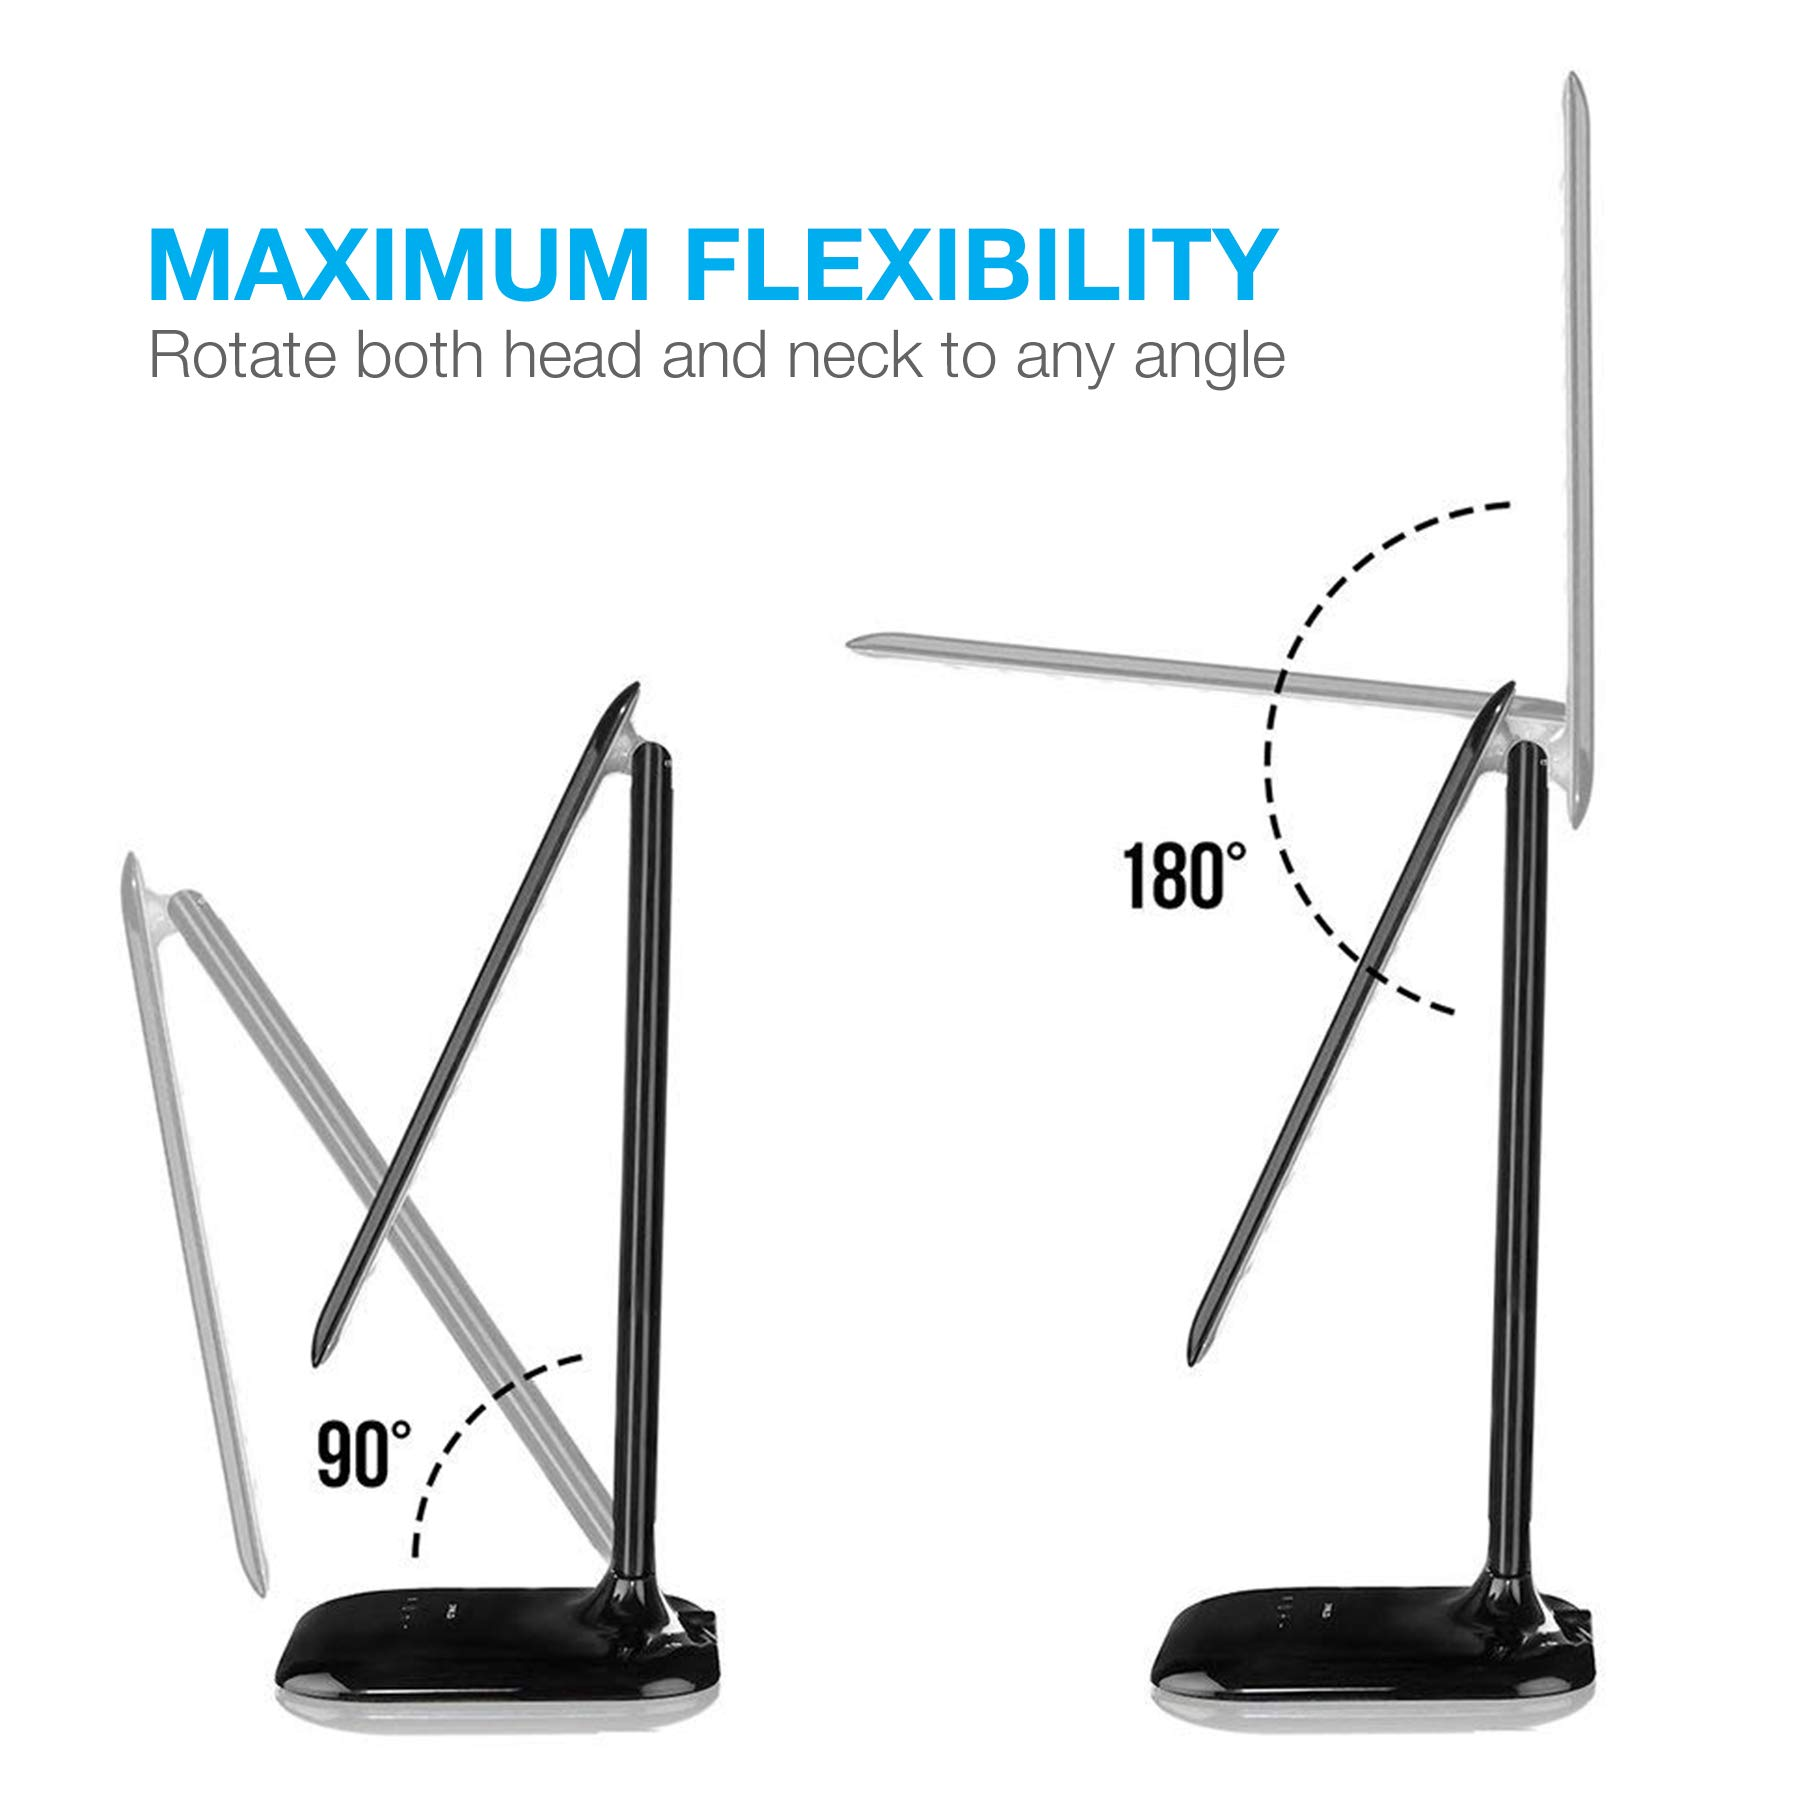 Vont Dimmable LED Desk Lamp - Elegant, Modern and Adjustable - 3 Colors - 5 Brightness Levels - Reading, Studying & Relaxation Modes -Environmentally Friendly - Black by Vont (Image #3)